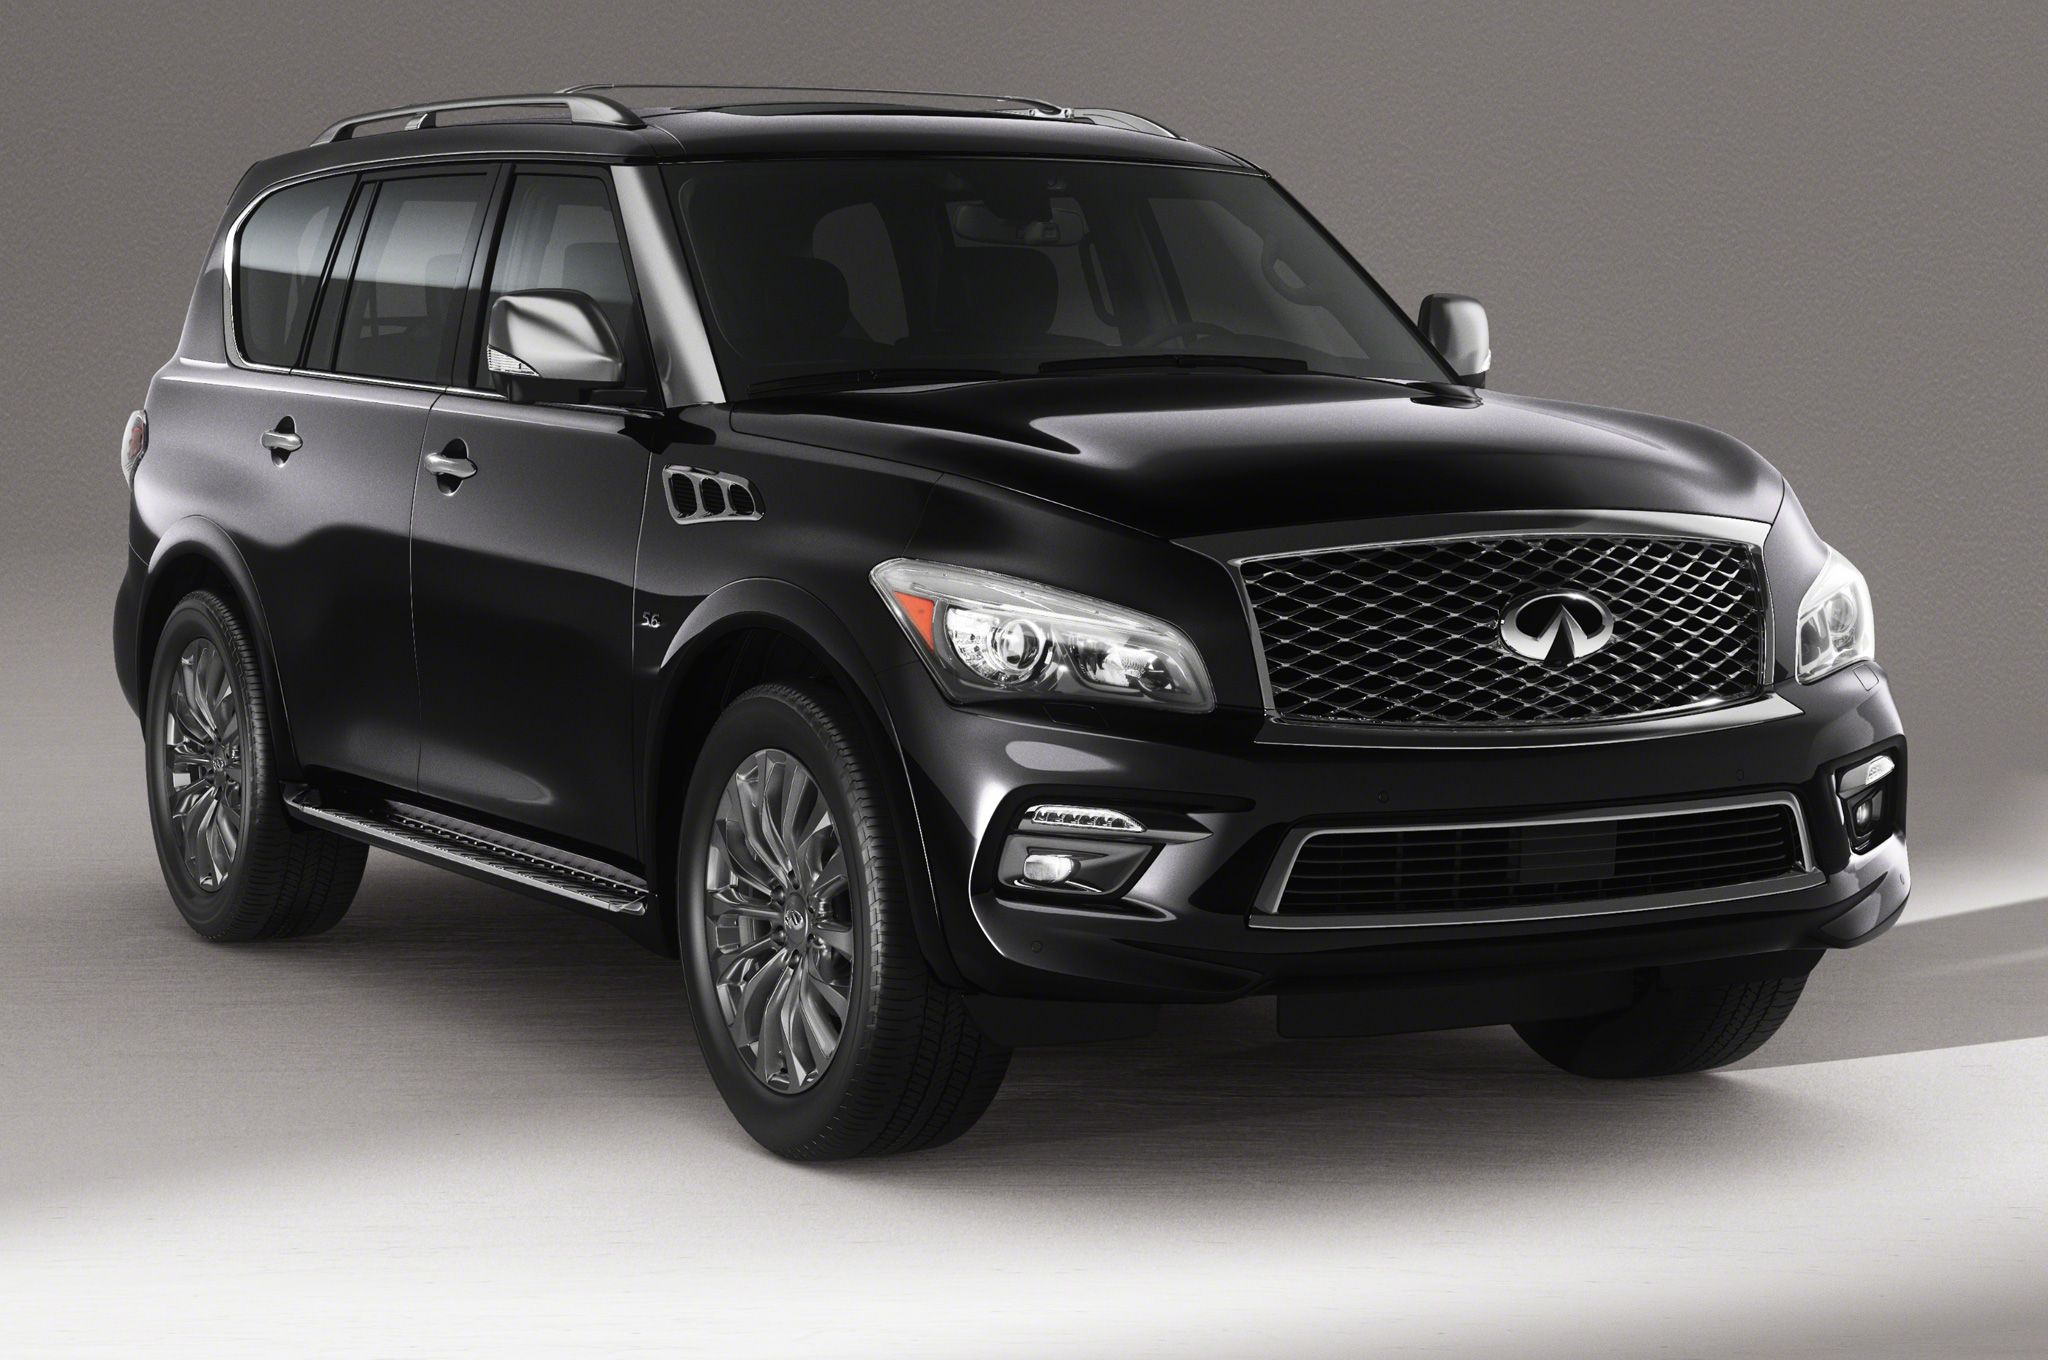 Infiniti qx80 with 24in black rhino spear wheels suv pinterest infiniti qx80 with 24in black rhino spear wheels suv pinterest rhinos wheels and cars vanachro Gallery